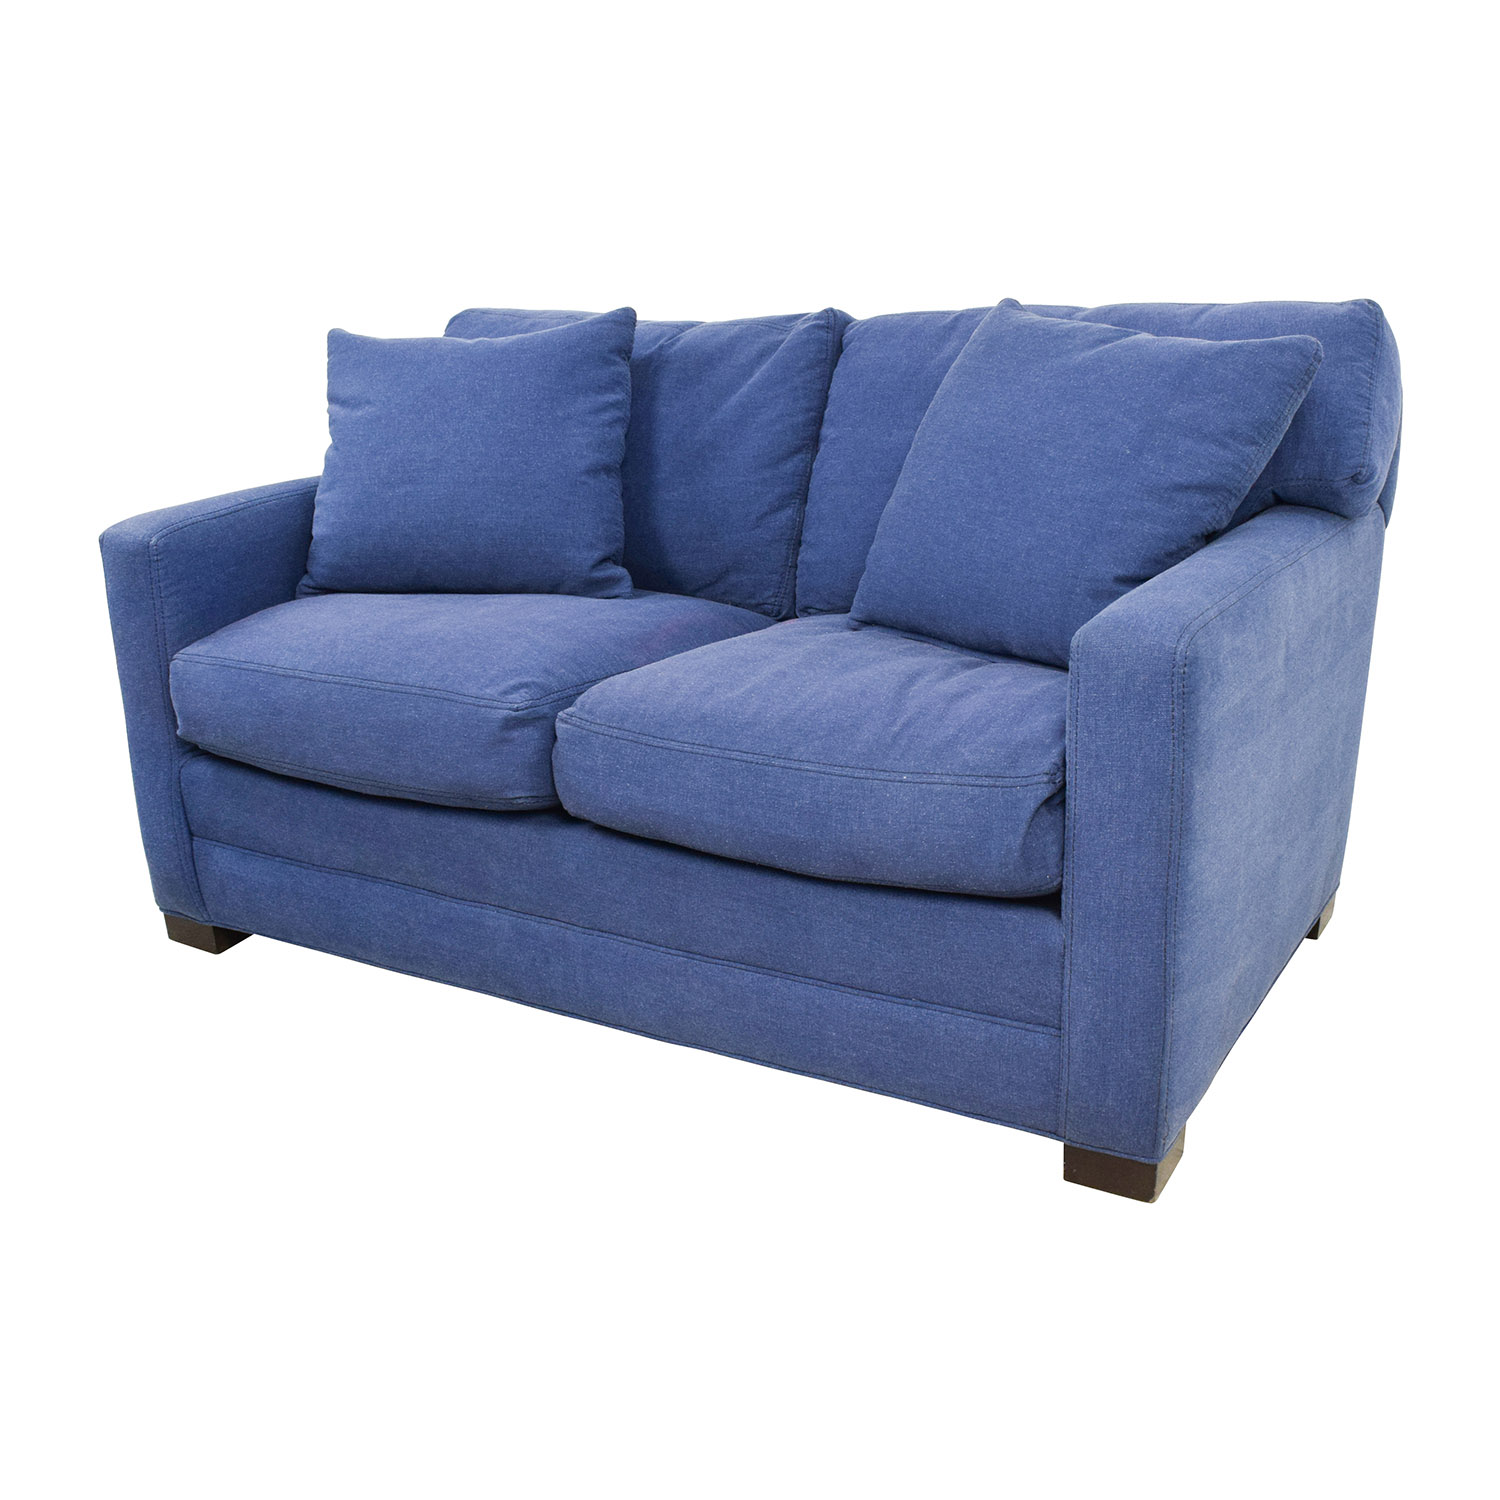 79 off lee industries lee industries denim blue loveseat sofas Denim loveseat